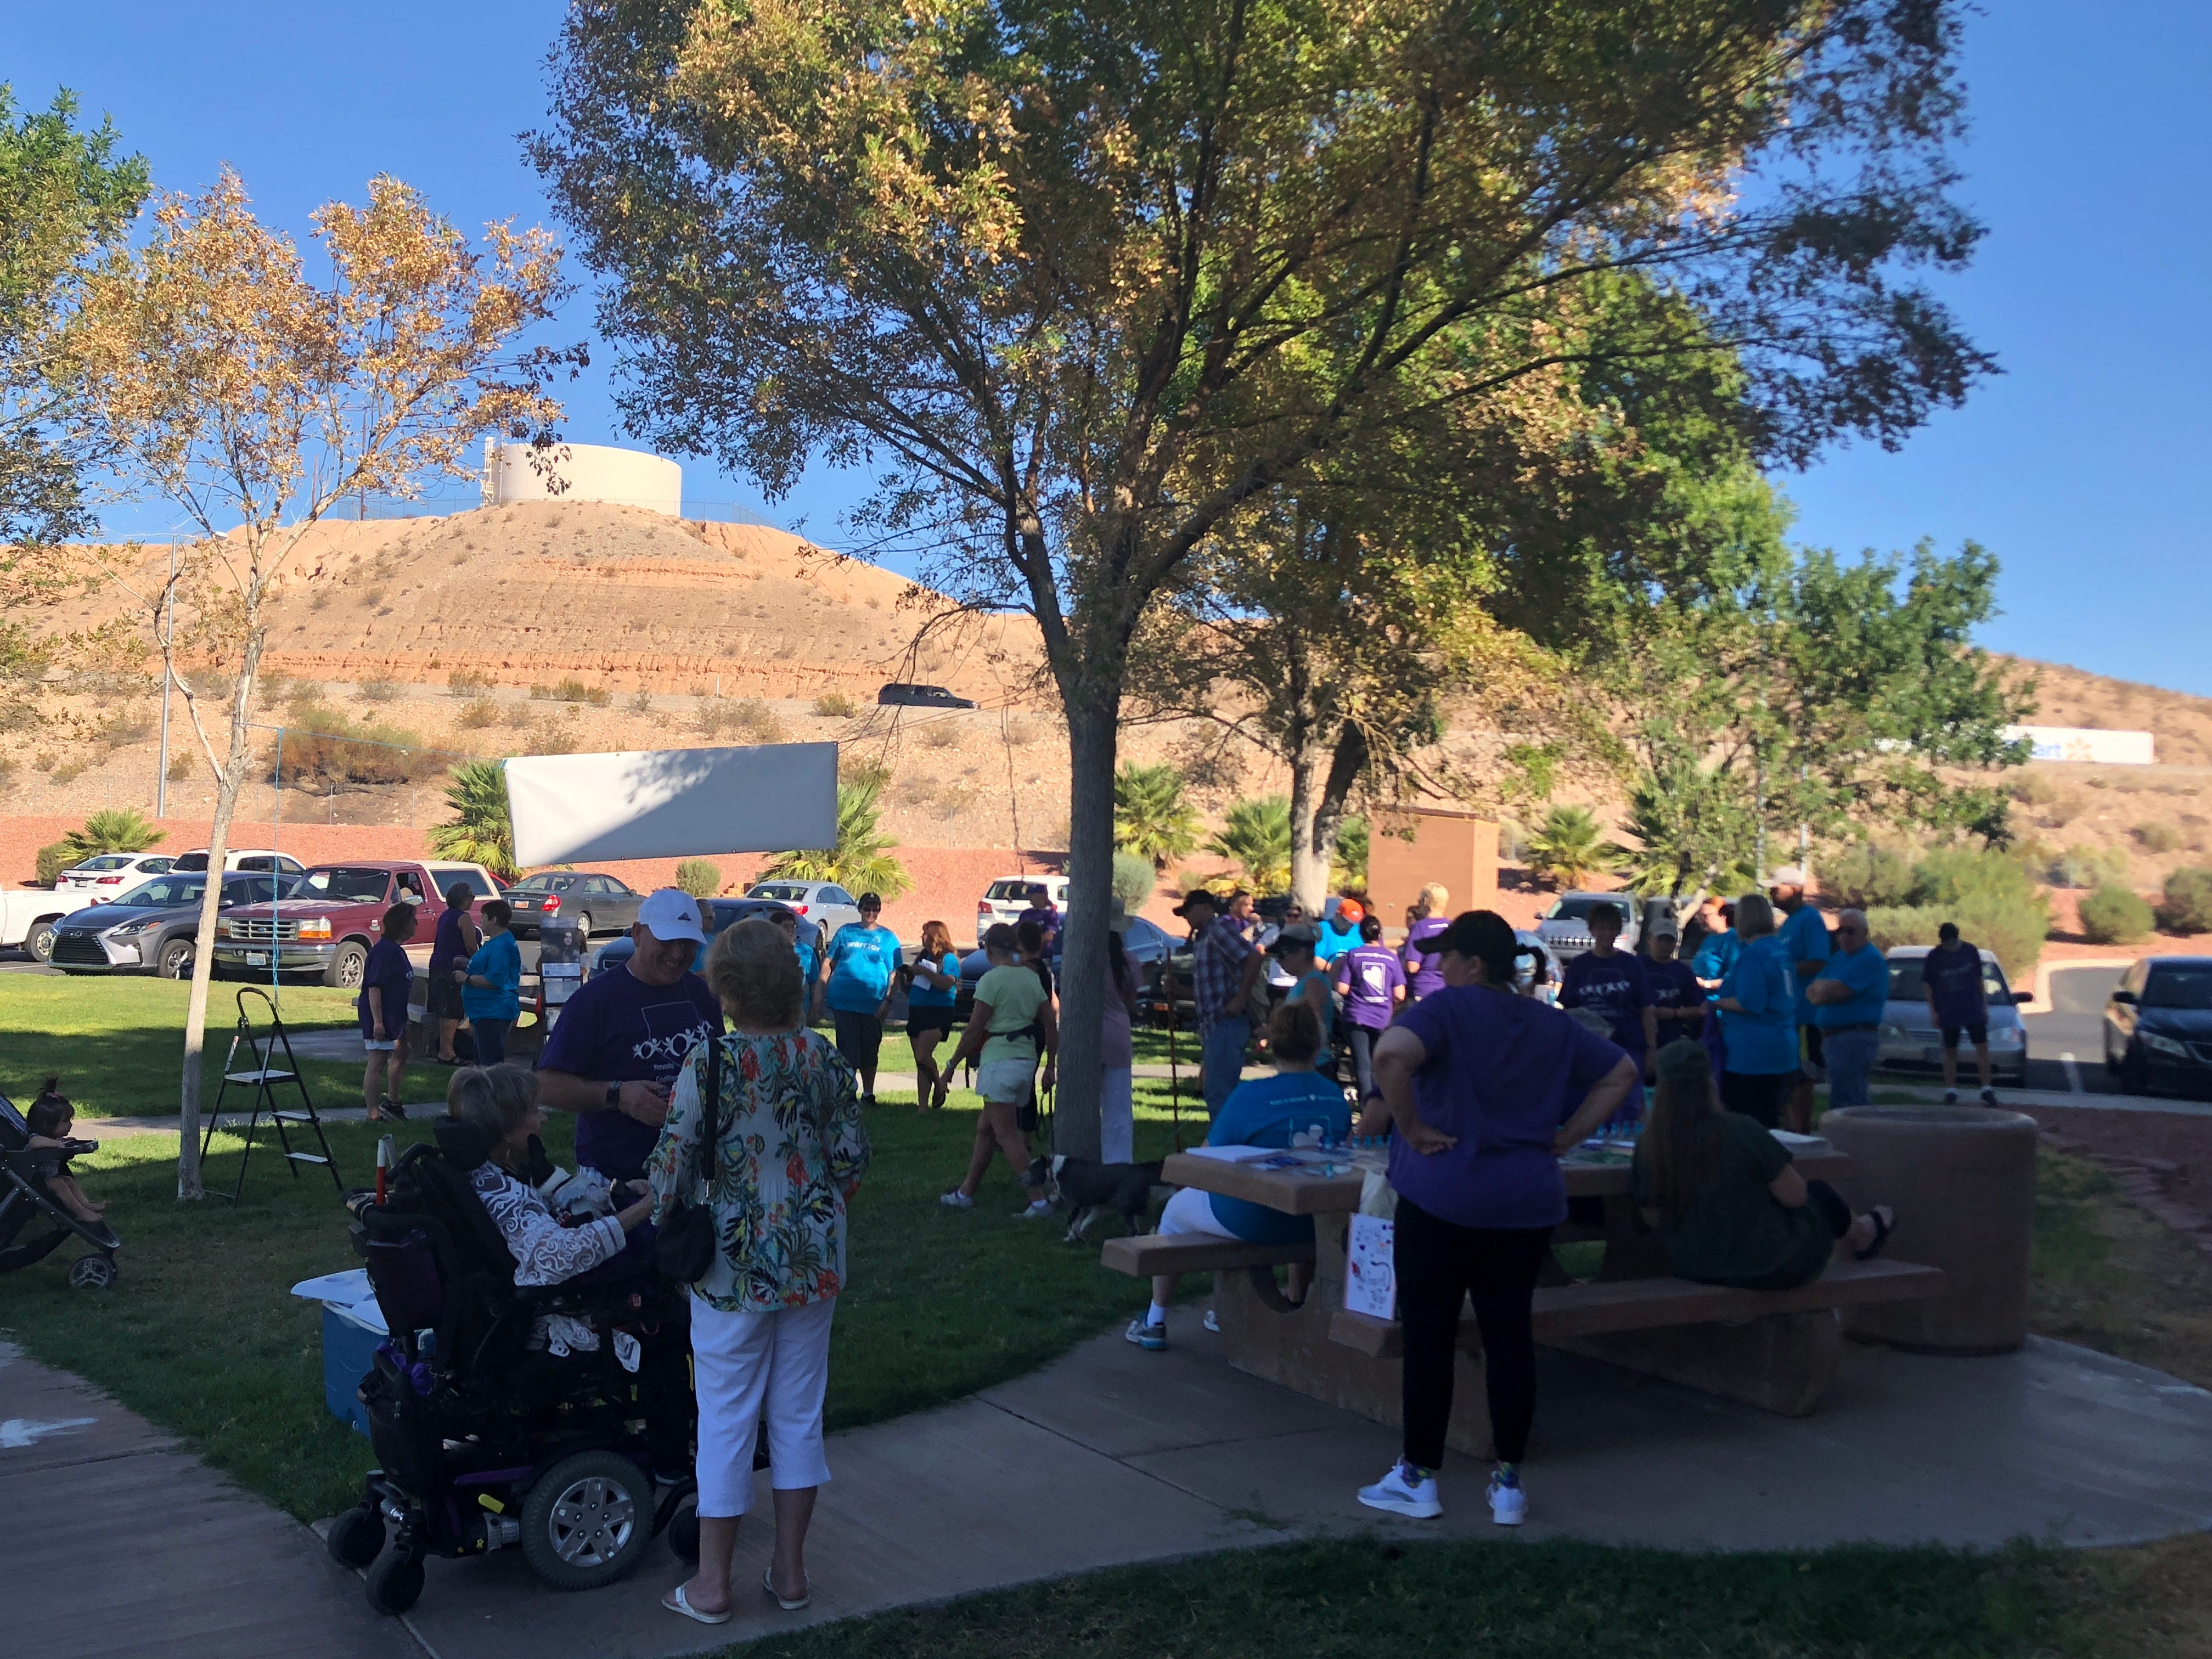 Residents gather at the Mesquite Recreation Center field before the Walk in Memory, Walk for Hope suicide prevention walk on Saturday, Sept. 15, 2018.